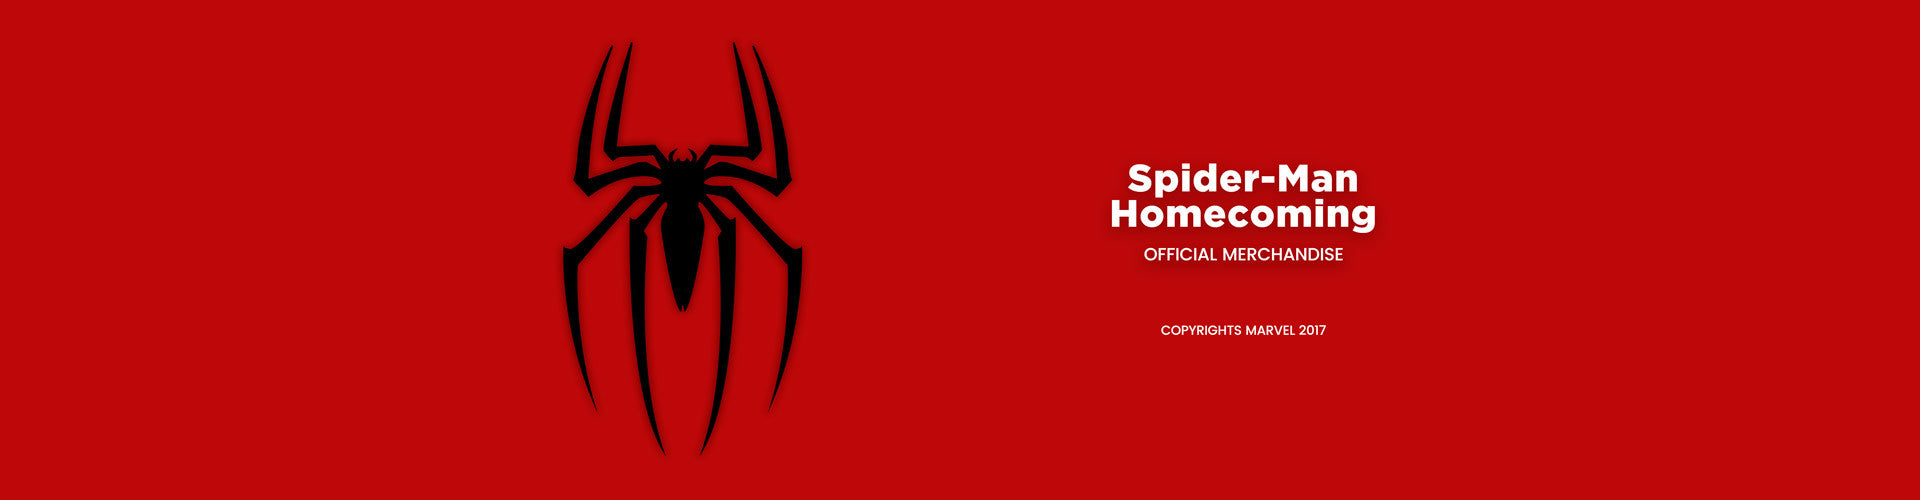 Spiderman Homecoming Official Merchandise India